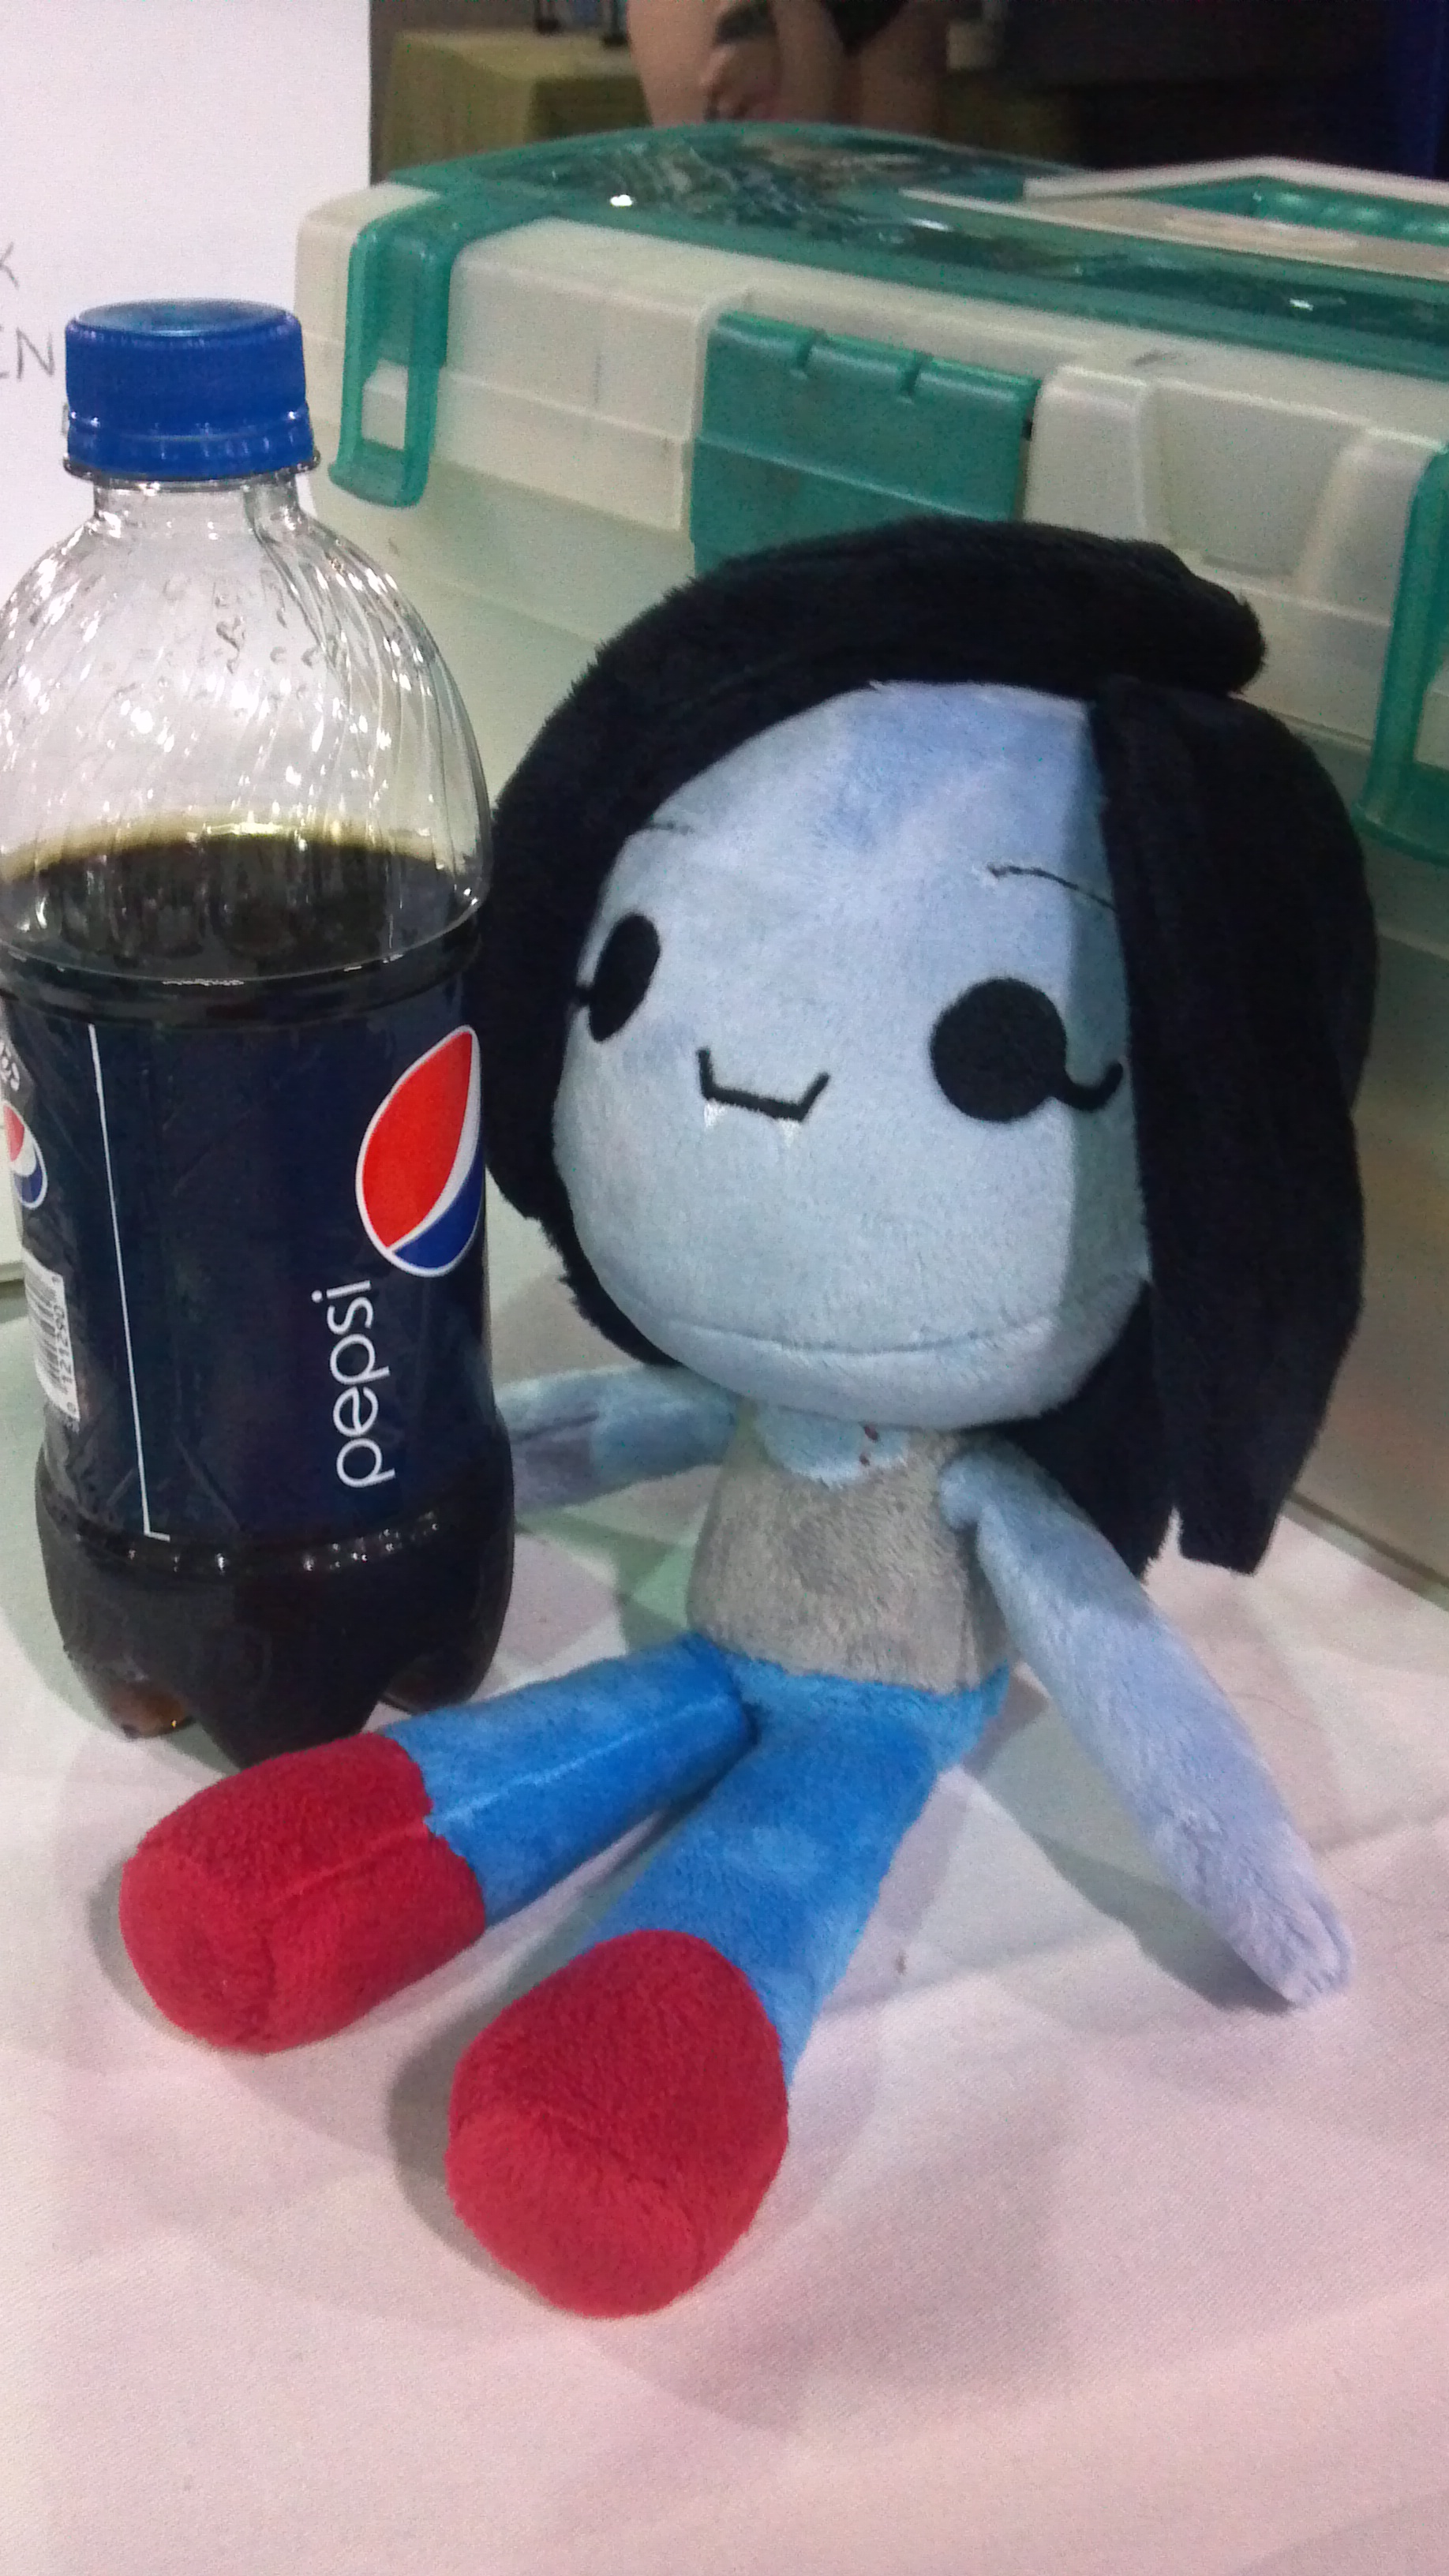 Doll with Pepsi